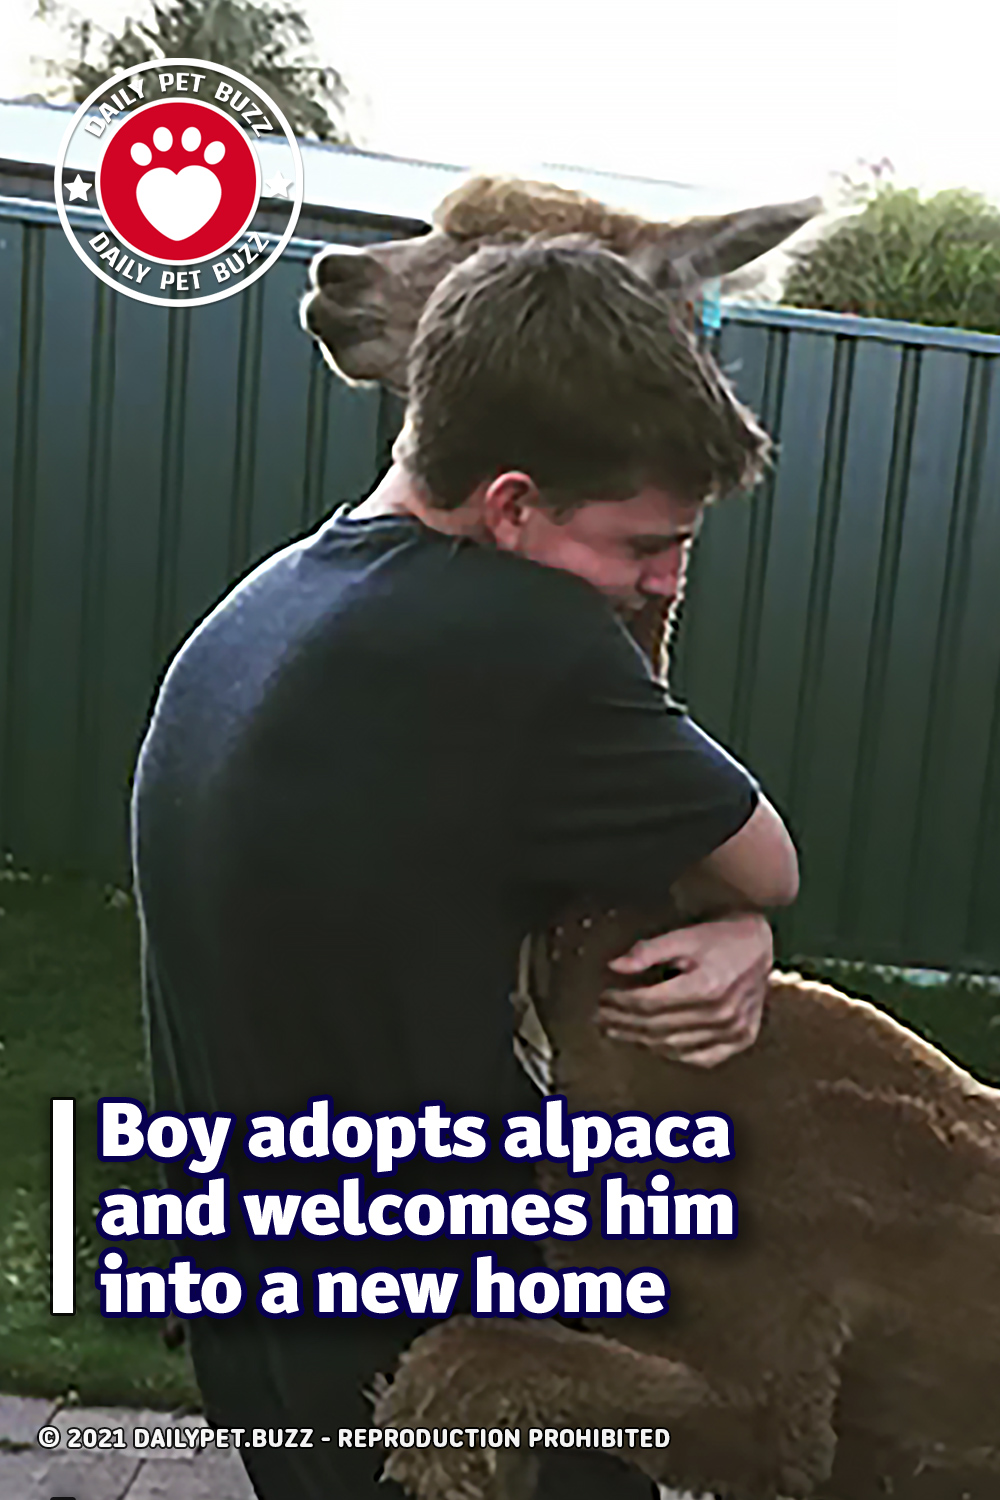 Boy adopts alpaca and welcomes him into a new home